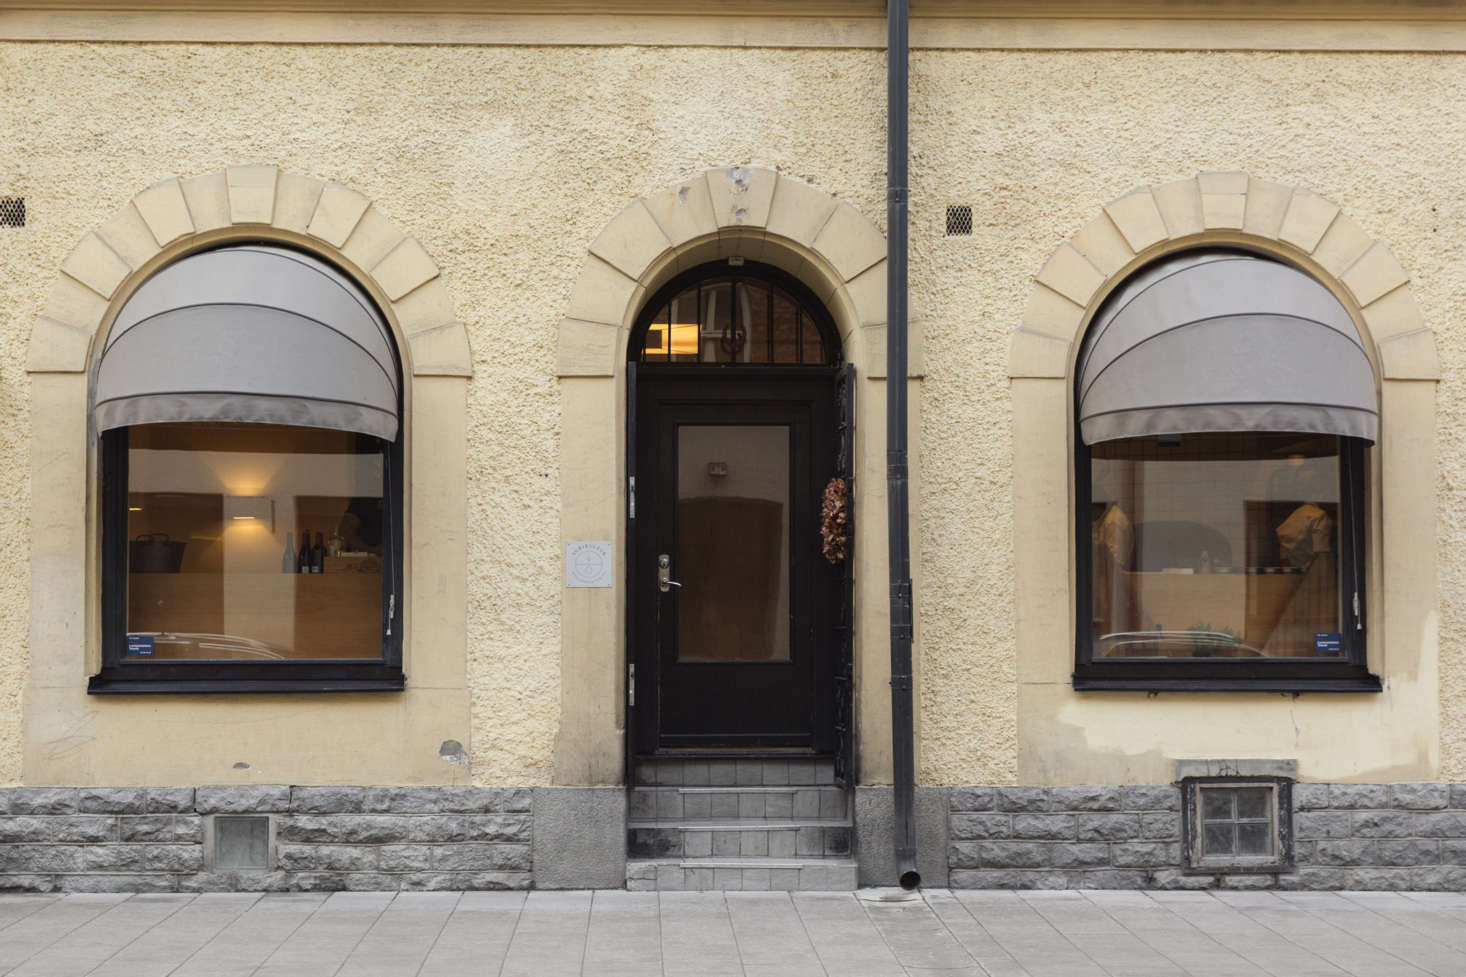 The stately exterior of Agrikultur, with muted tones and awnings. Note also: the dried-flower wreath hanging on the black front door.